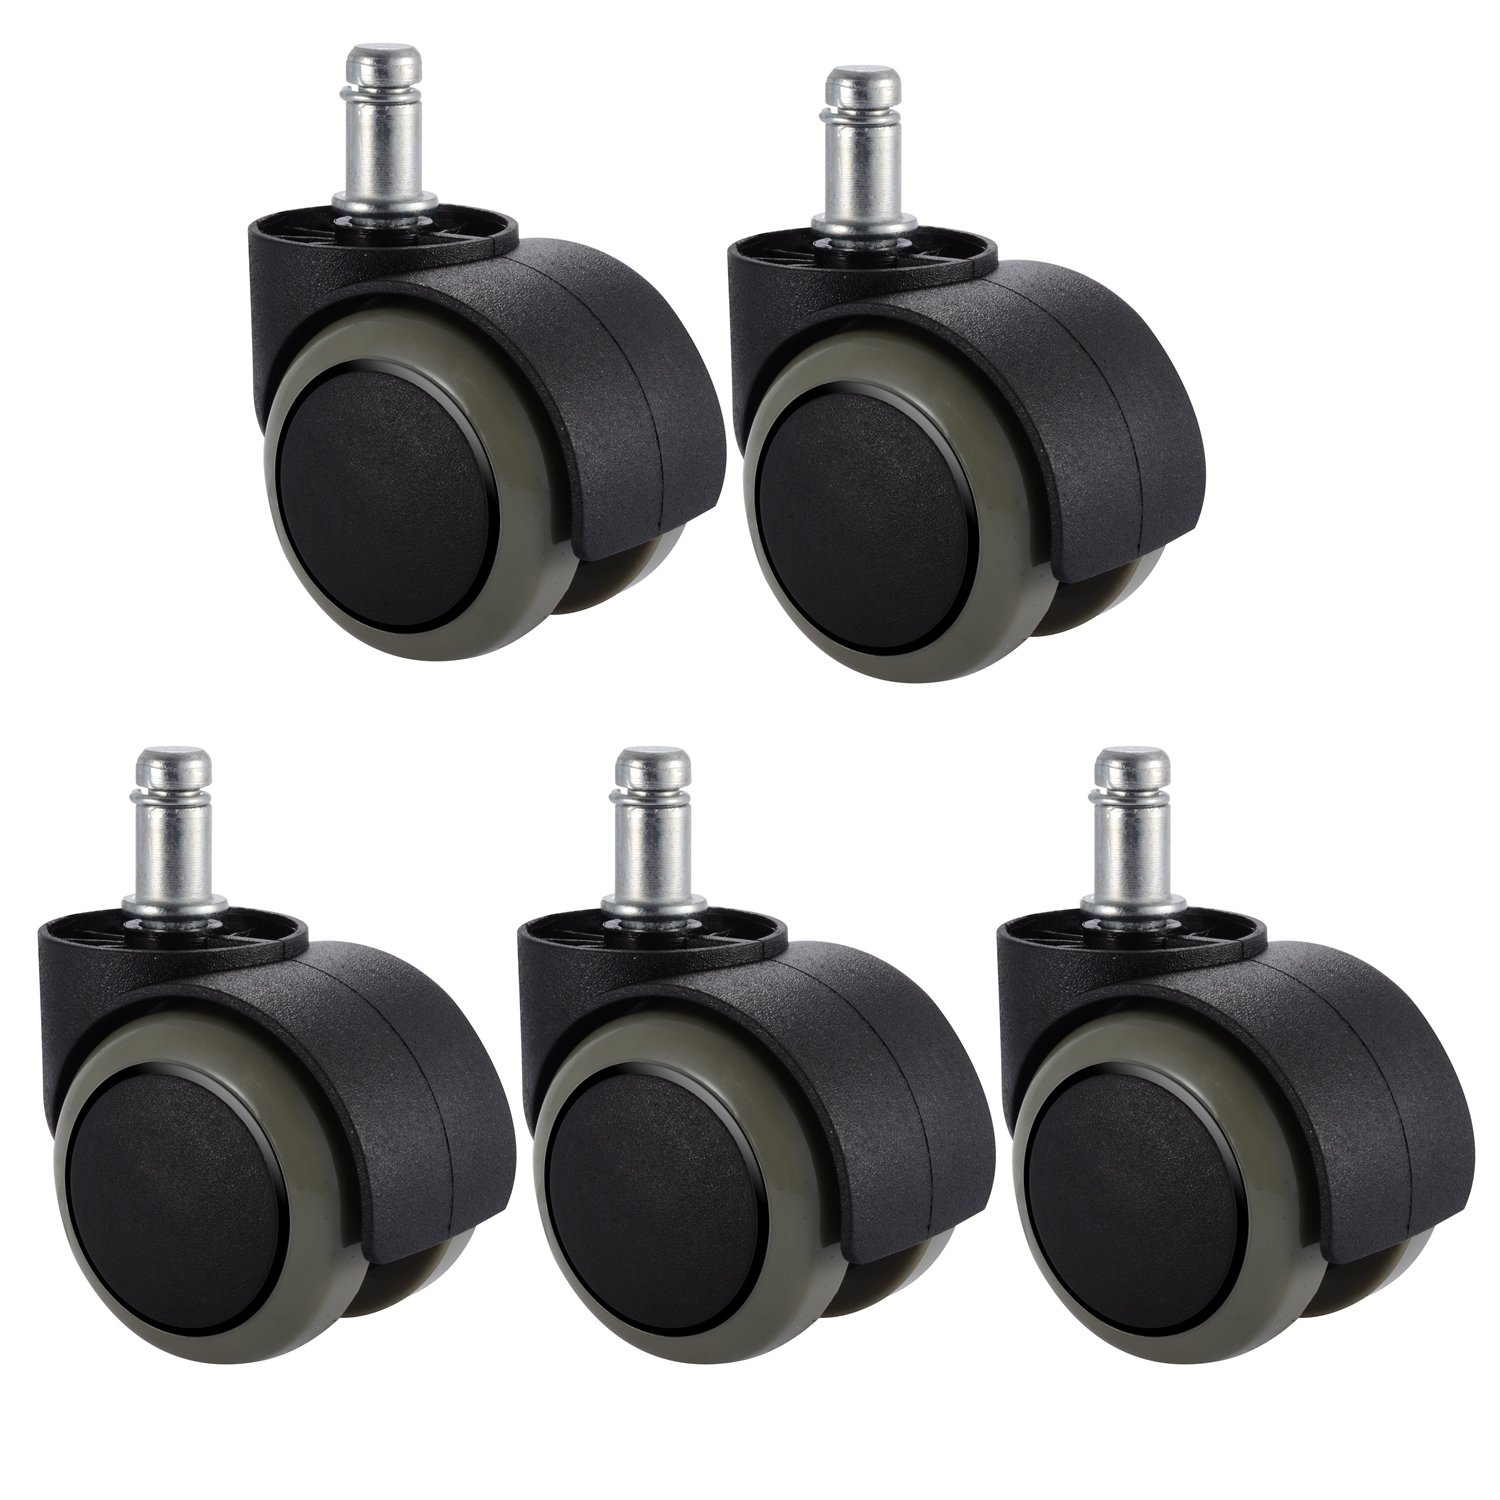 "PChero 5 Packs Office Chair Casters Wheels with Universal Standard Size 11mm Stem Diameter and 22mm Stem Length (7/16"" X 7/8""), Support up to 550LBs Weight"